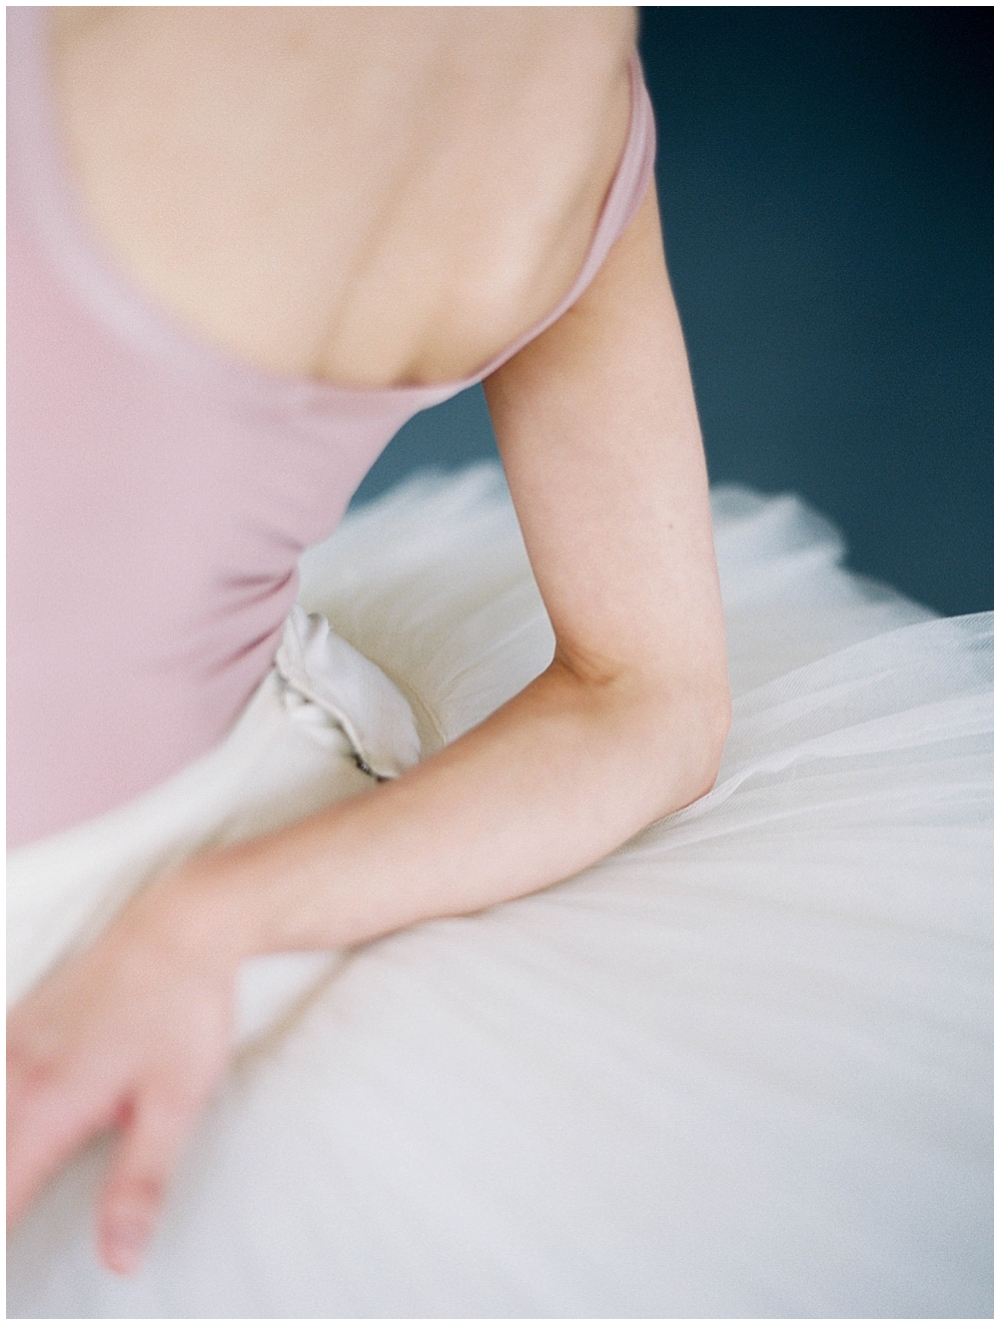 Fine Art Film Wedding Photographer | Sarah Carpenter Ballet Photography | Seattle & Destinations Worldwide